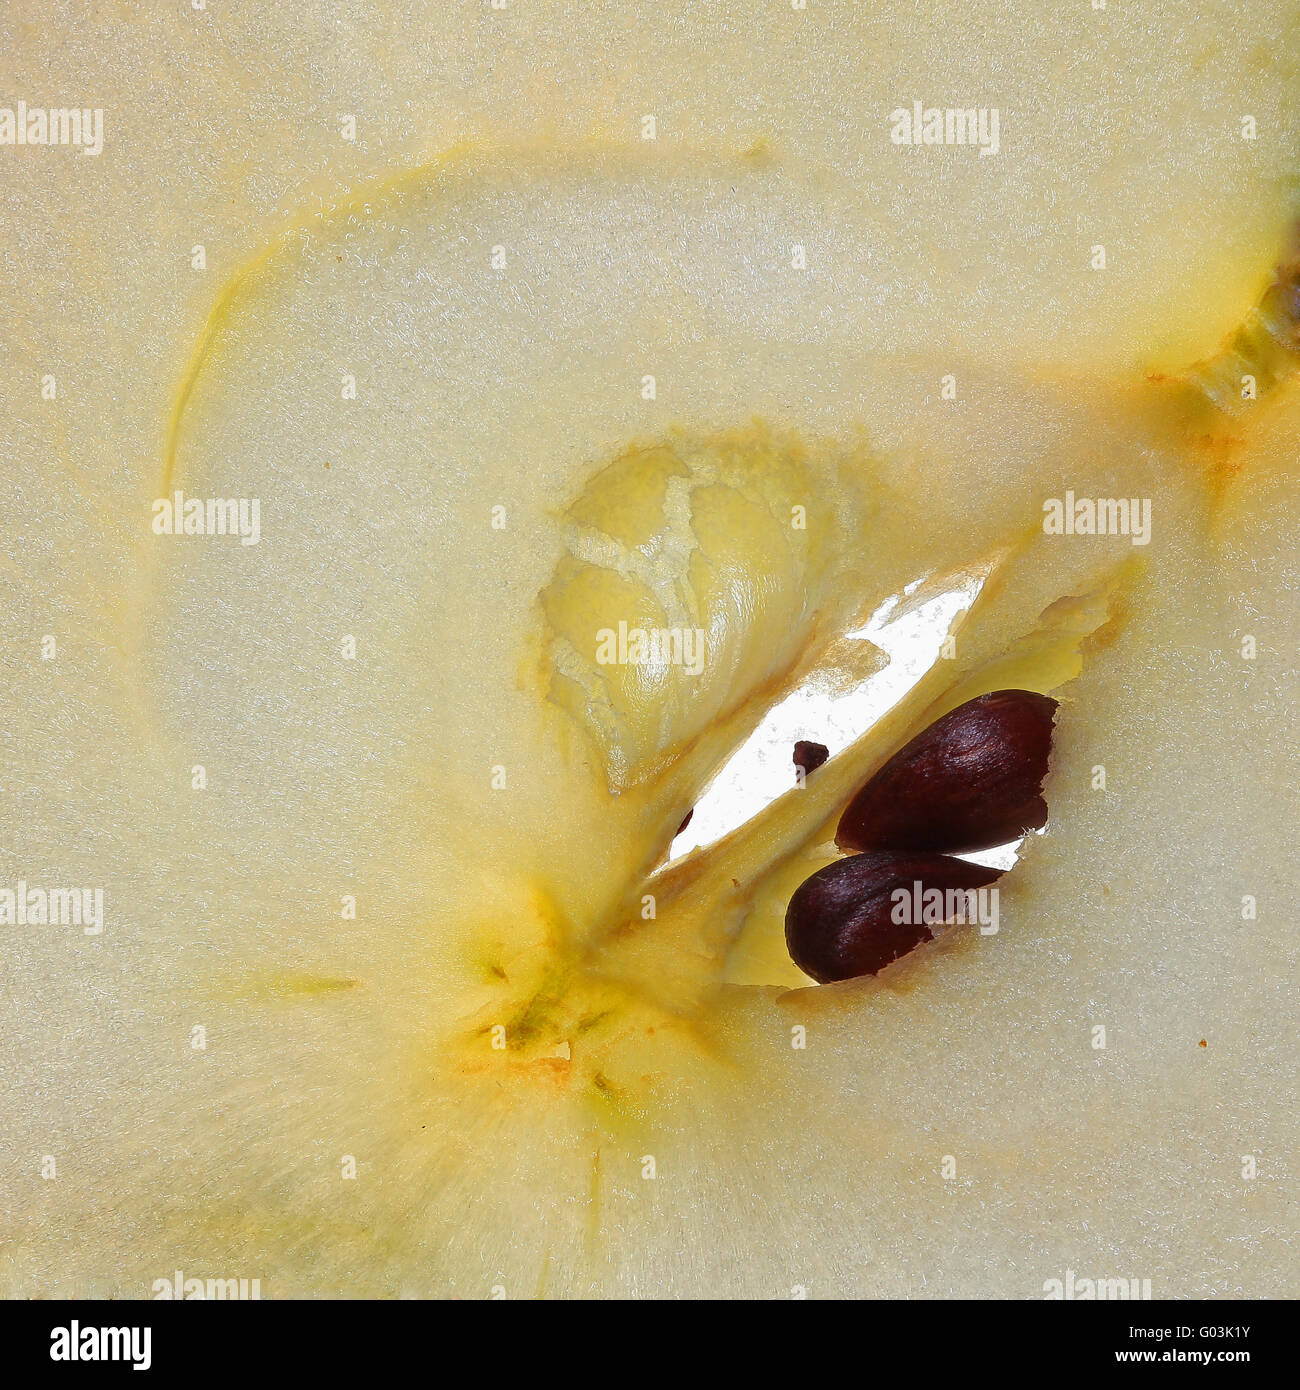 apple core - Stock Image